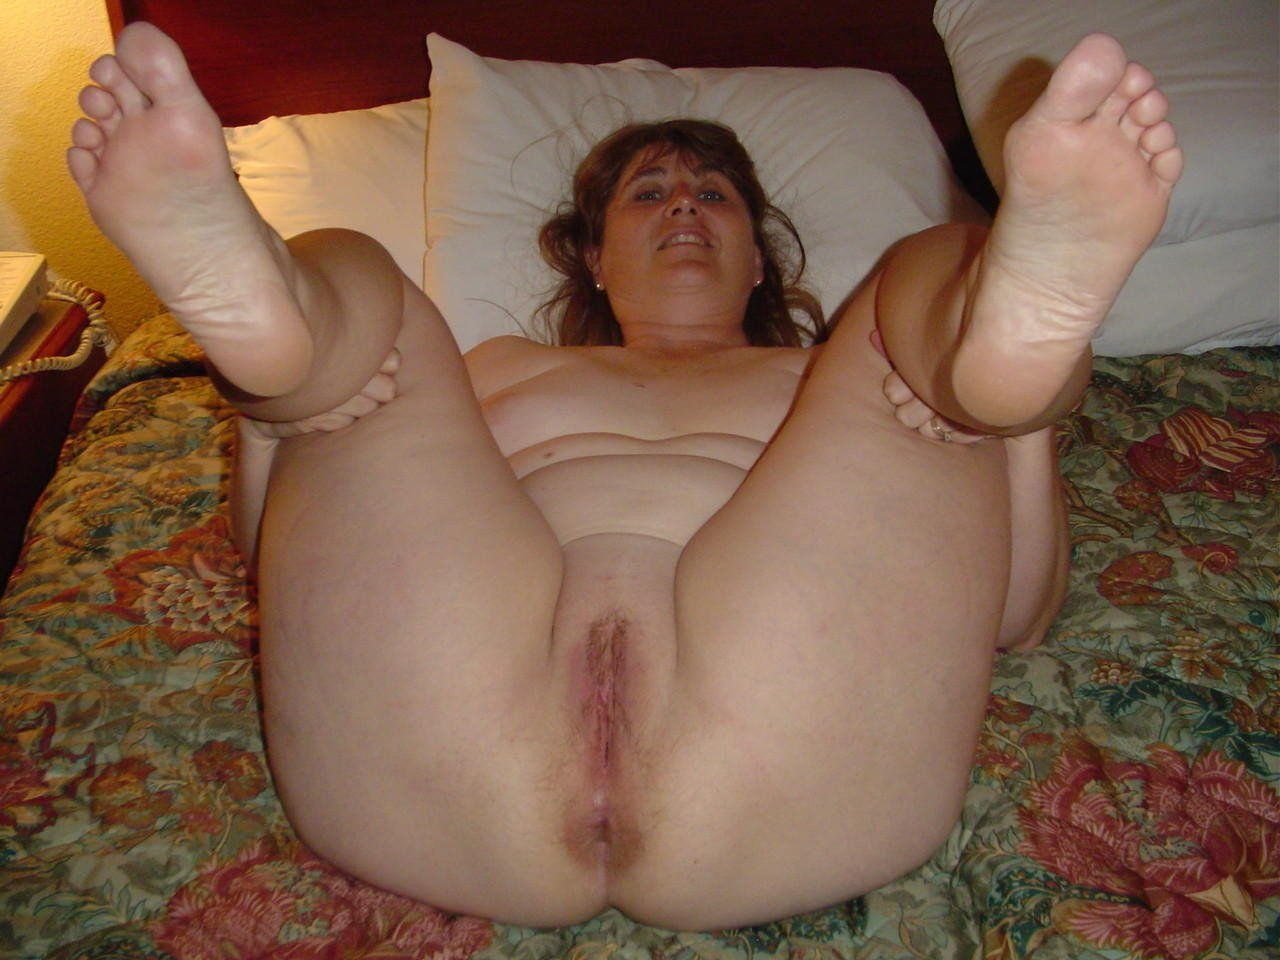 Granny pussy and feet . Random Photo Gallery. Comments: 4